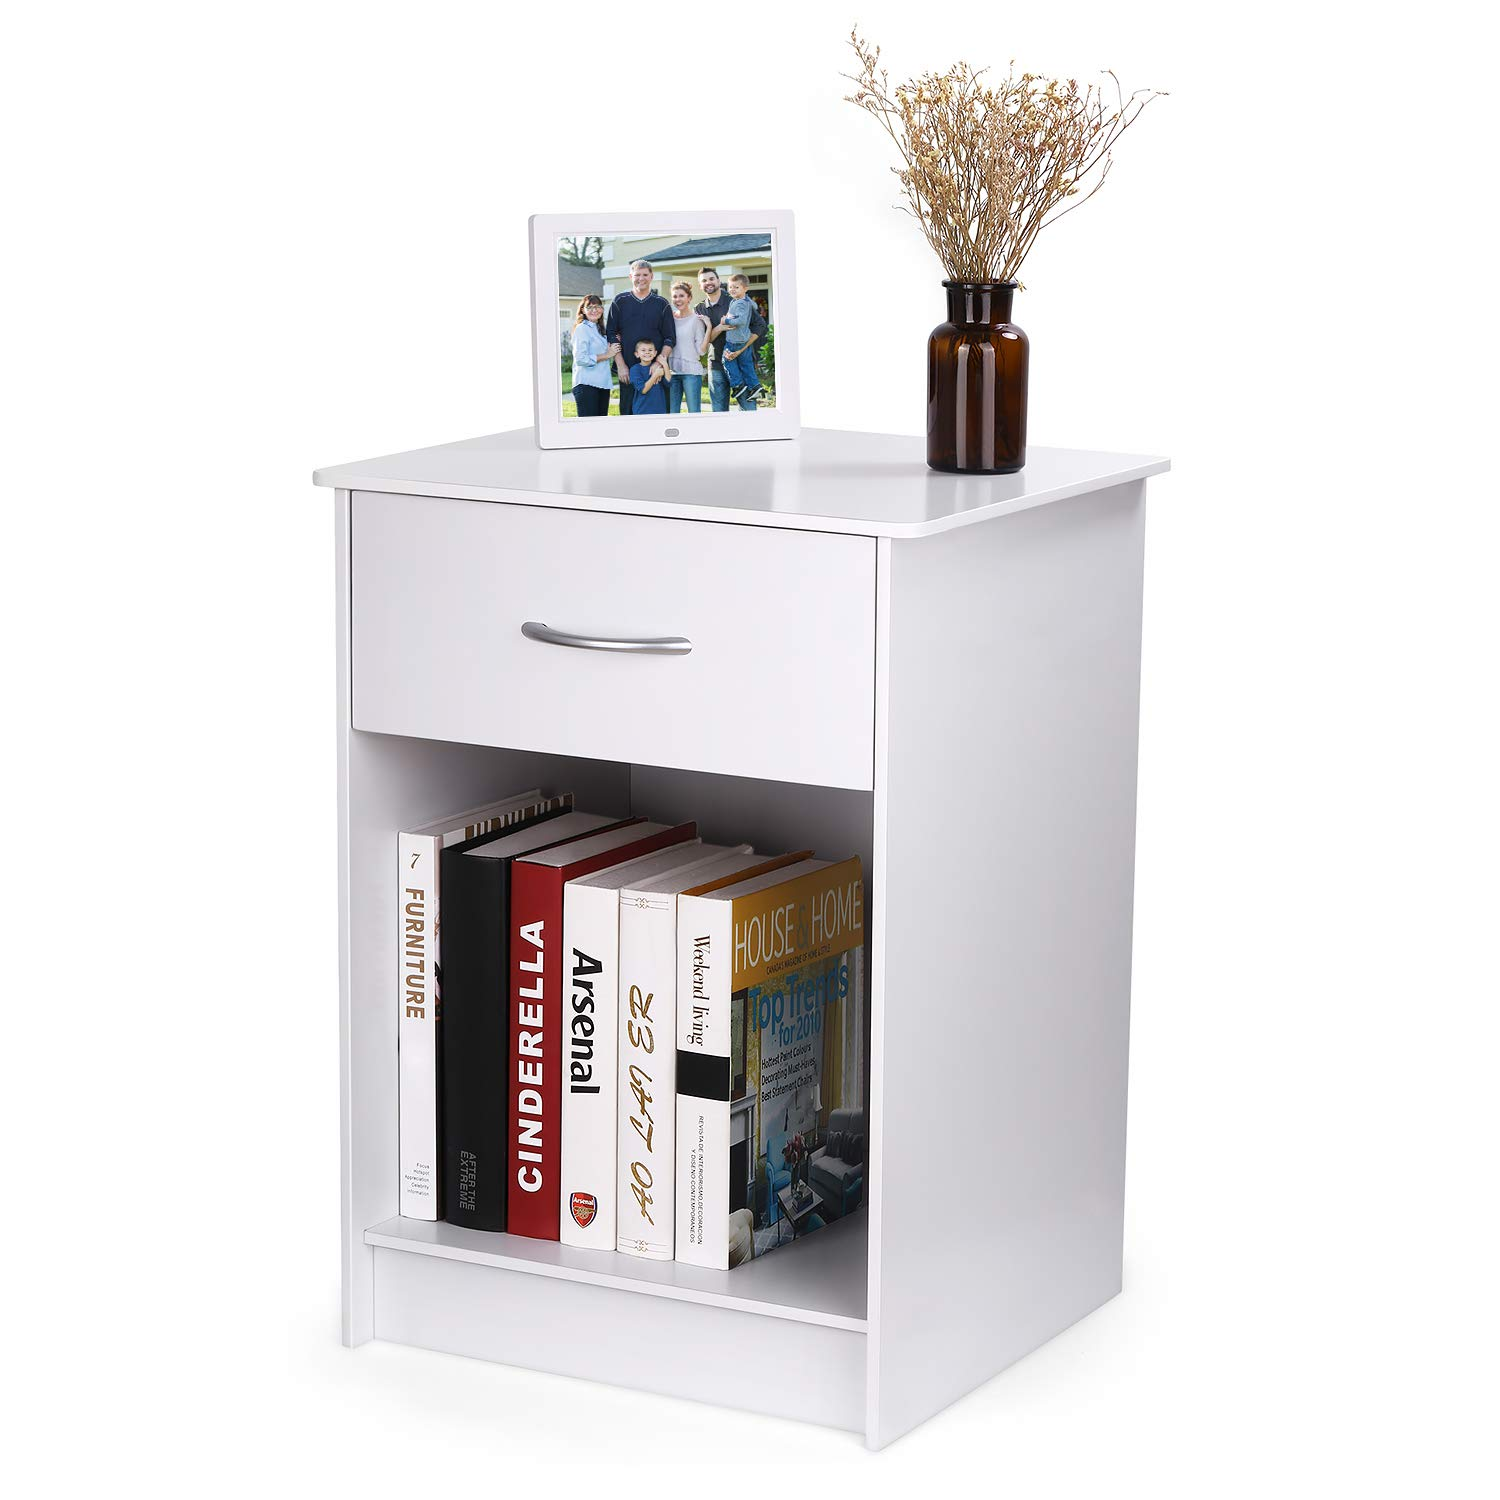 INTEY White Wood Nightstand with One Drawer and Open Cabinet Storage, Bedroom Modern Tall Nightstands Bedside End Table